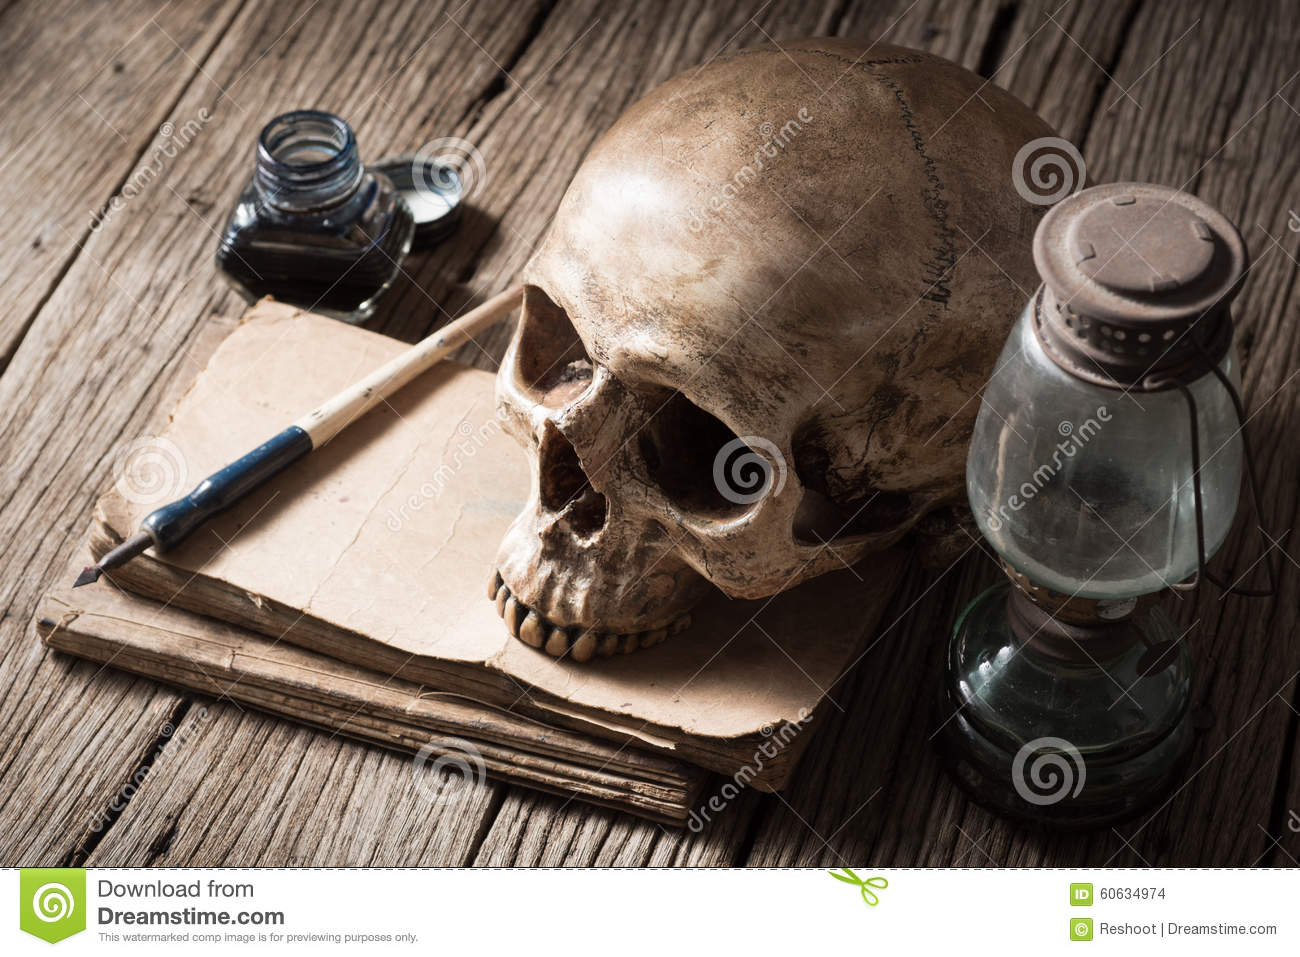 https://thumbs.dreamstime.com/z/death-writer-still-life-photography-skull-lamp-old-text-book-inkwell-dip-pen-old-wood-60634974.jpg